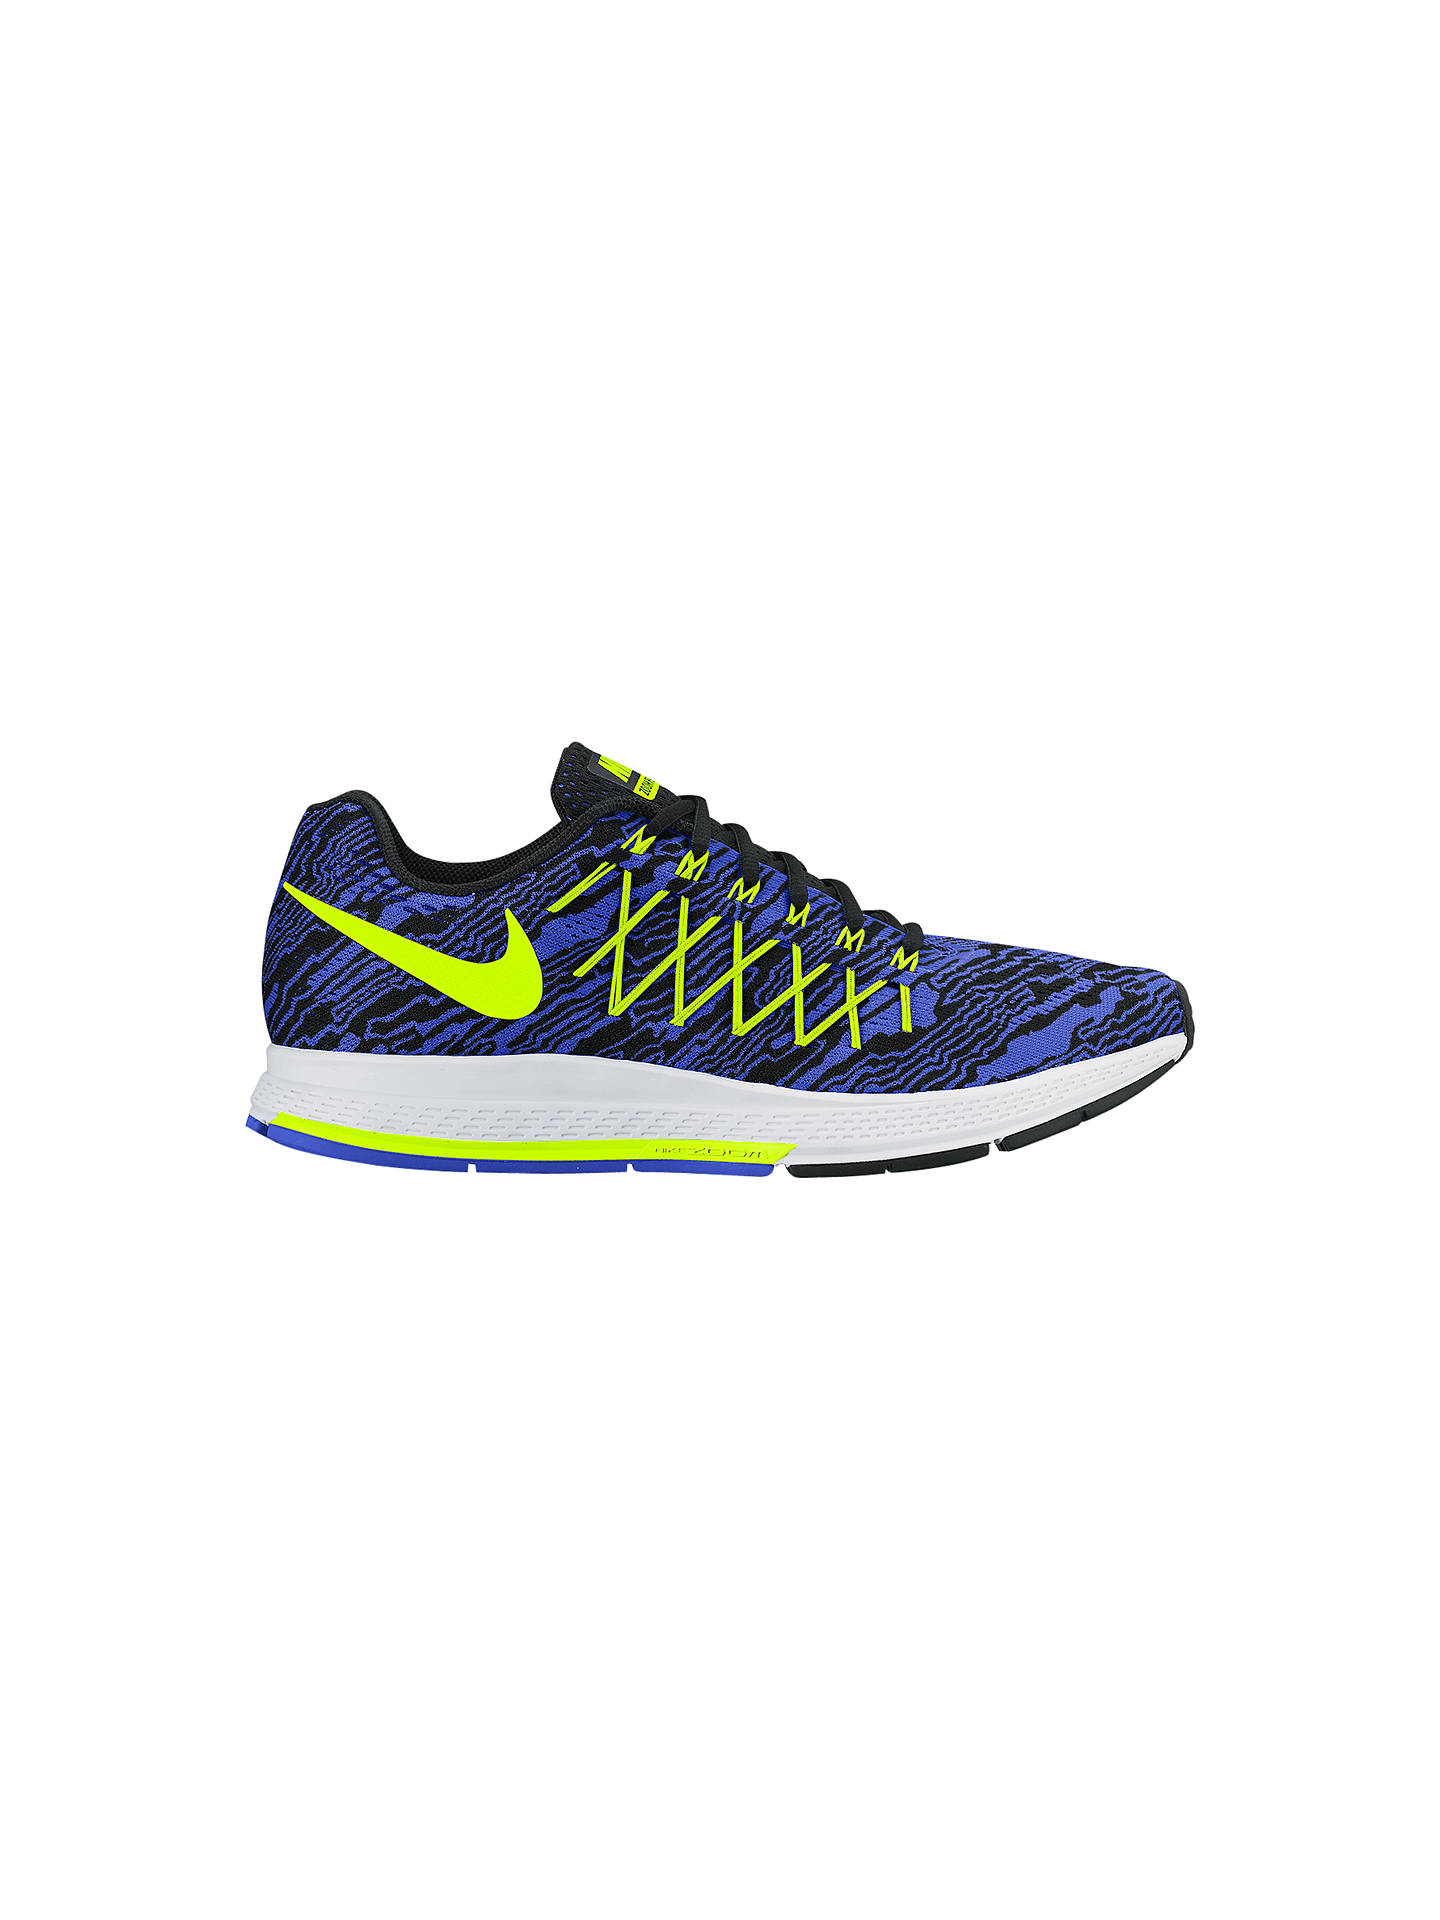 51c2384941c3a Buy Nike Air Zoom Pegasus 32 Men s Running Shoes